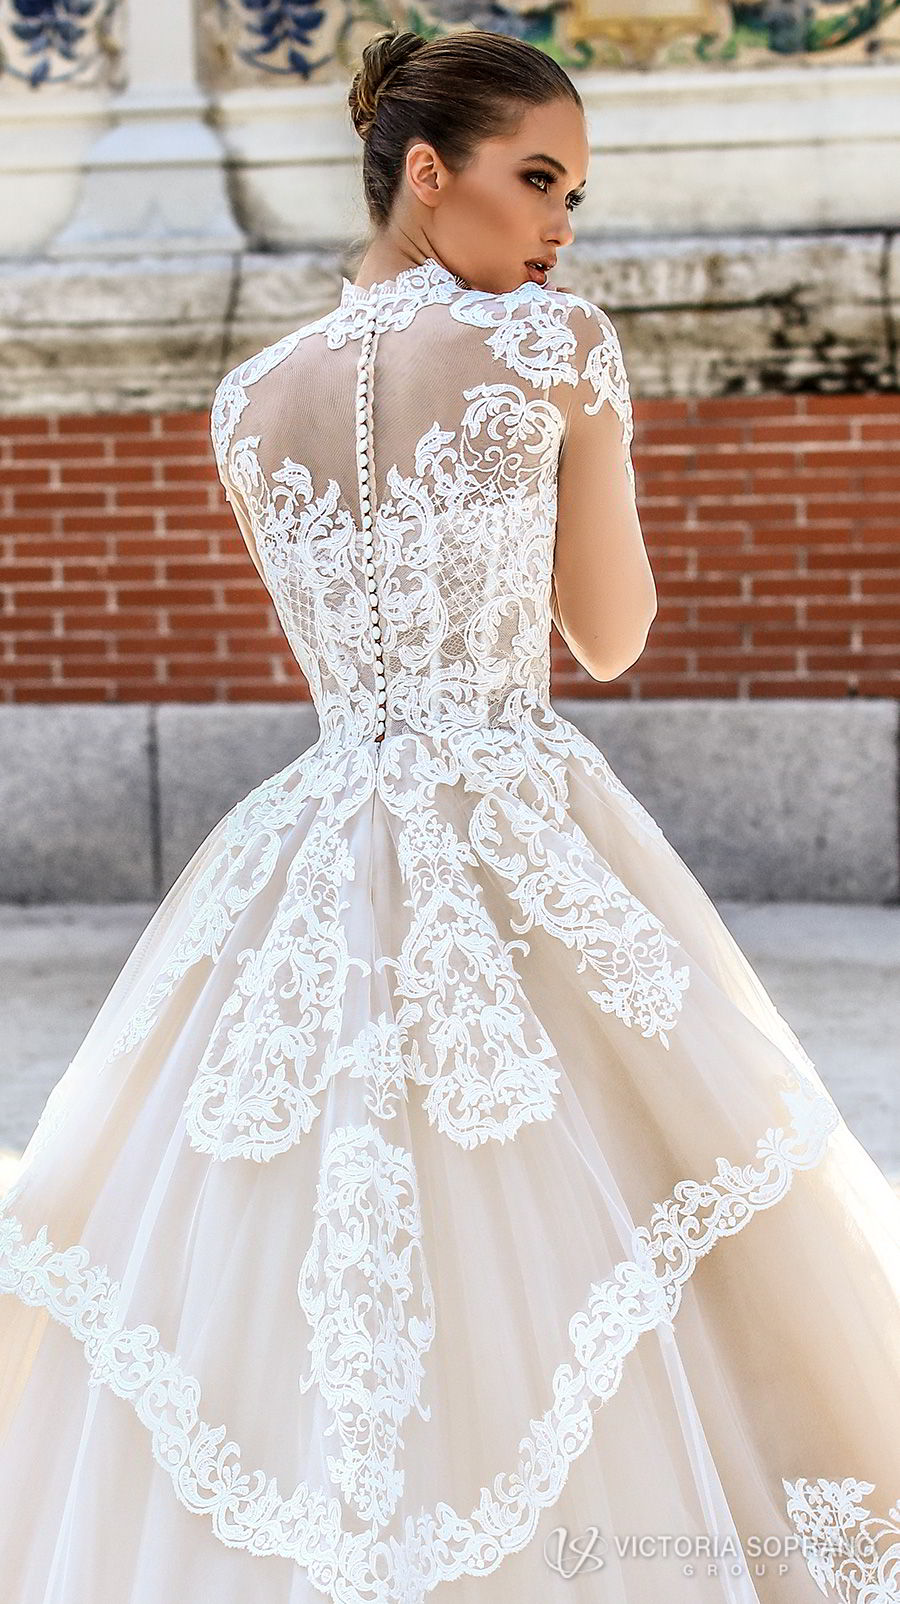 Victoria Soprano 2018 Wedding Dresses Crazyforus